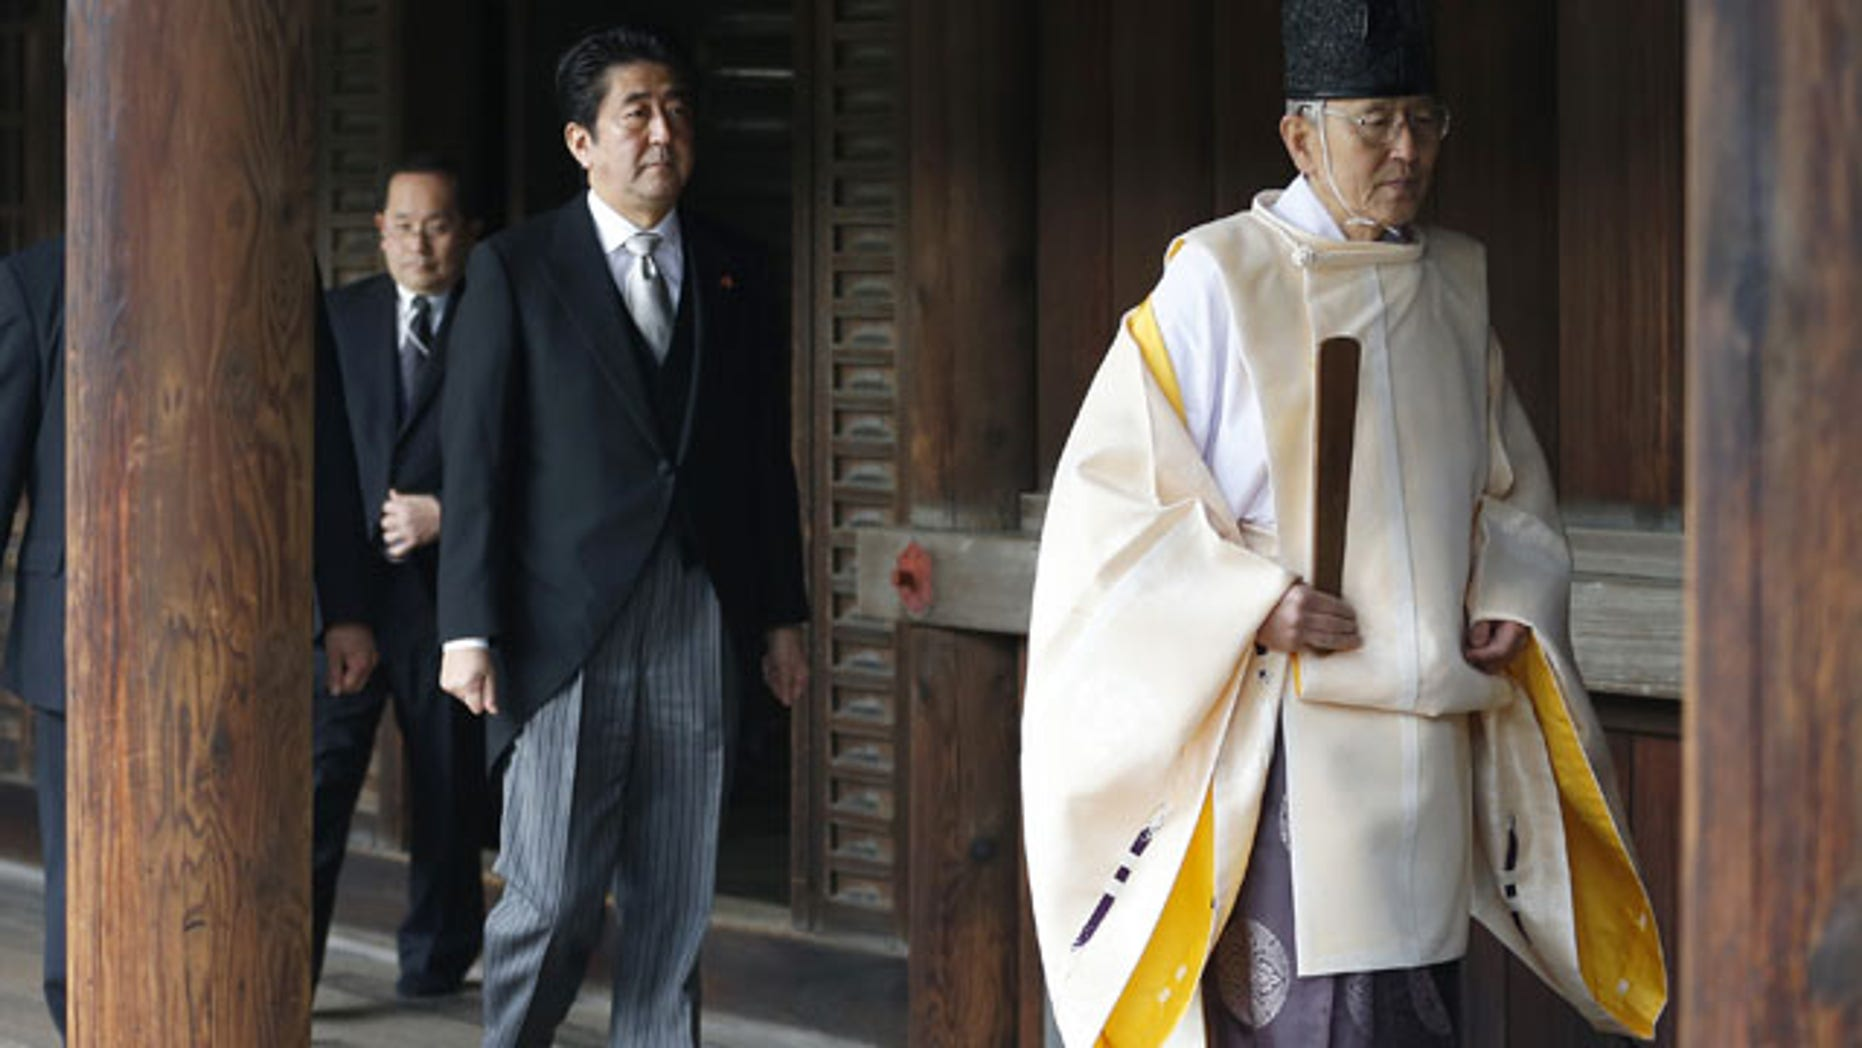 """December 26, 2013: Japanese Prime Minister Shinzo Abe, second from right, follows a Shinto priest to pay respect for the war dead at Yasukuni Shrine in Tokyo. The visit to the shrine, which honors 2.5 million war dead including convicted class A war criminals, appears to be a departure from Abe's """"pragmatic"""" approach to foreign policy, in which he tried to avoid alienating neighboring countries. (AP)"""